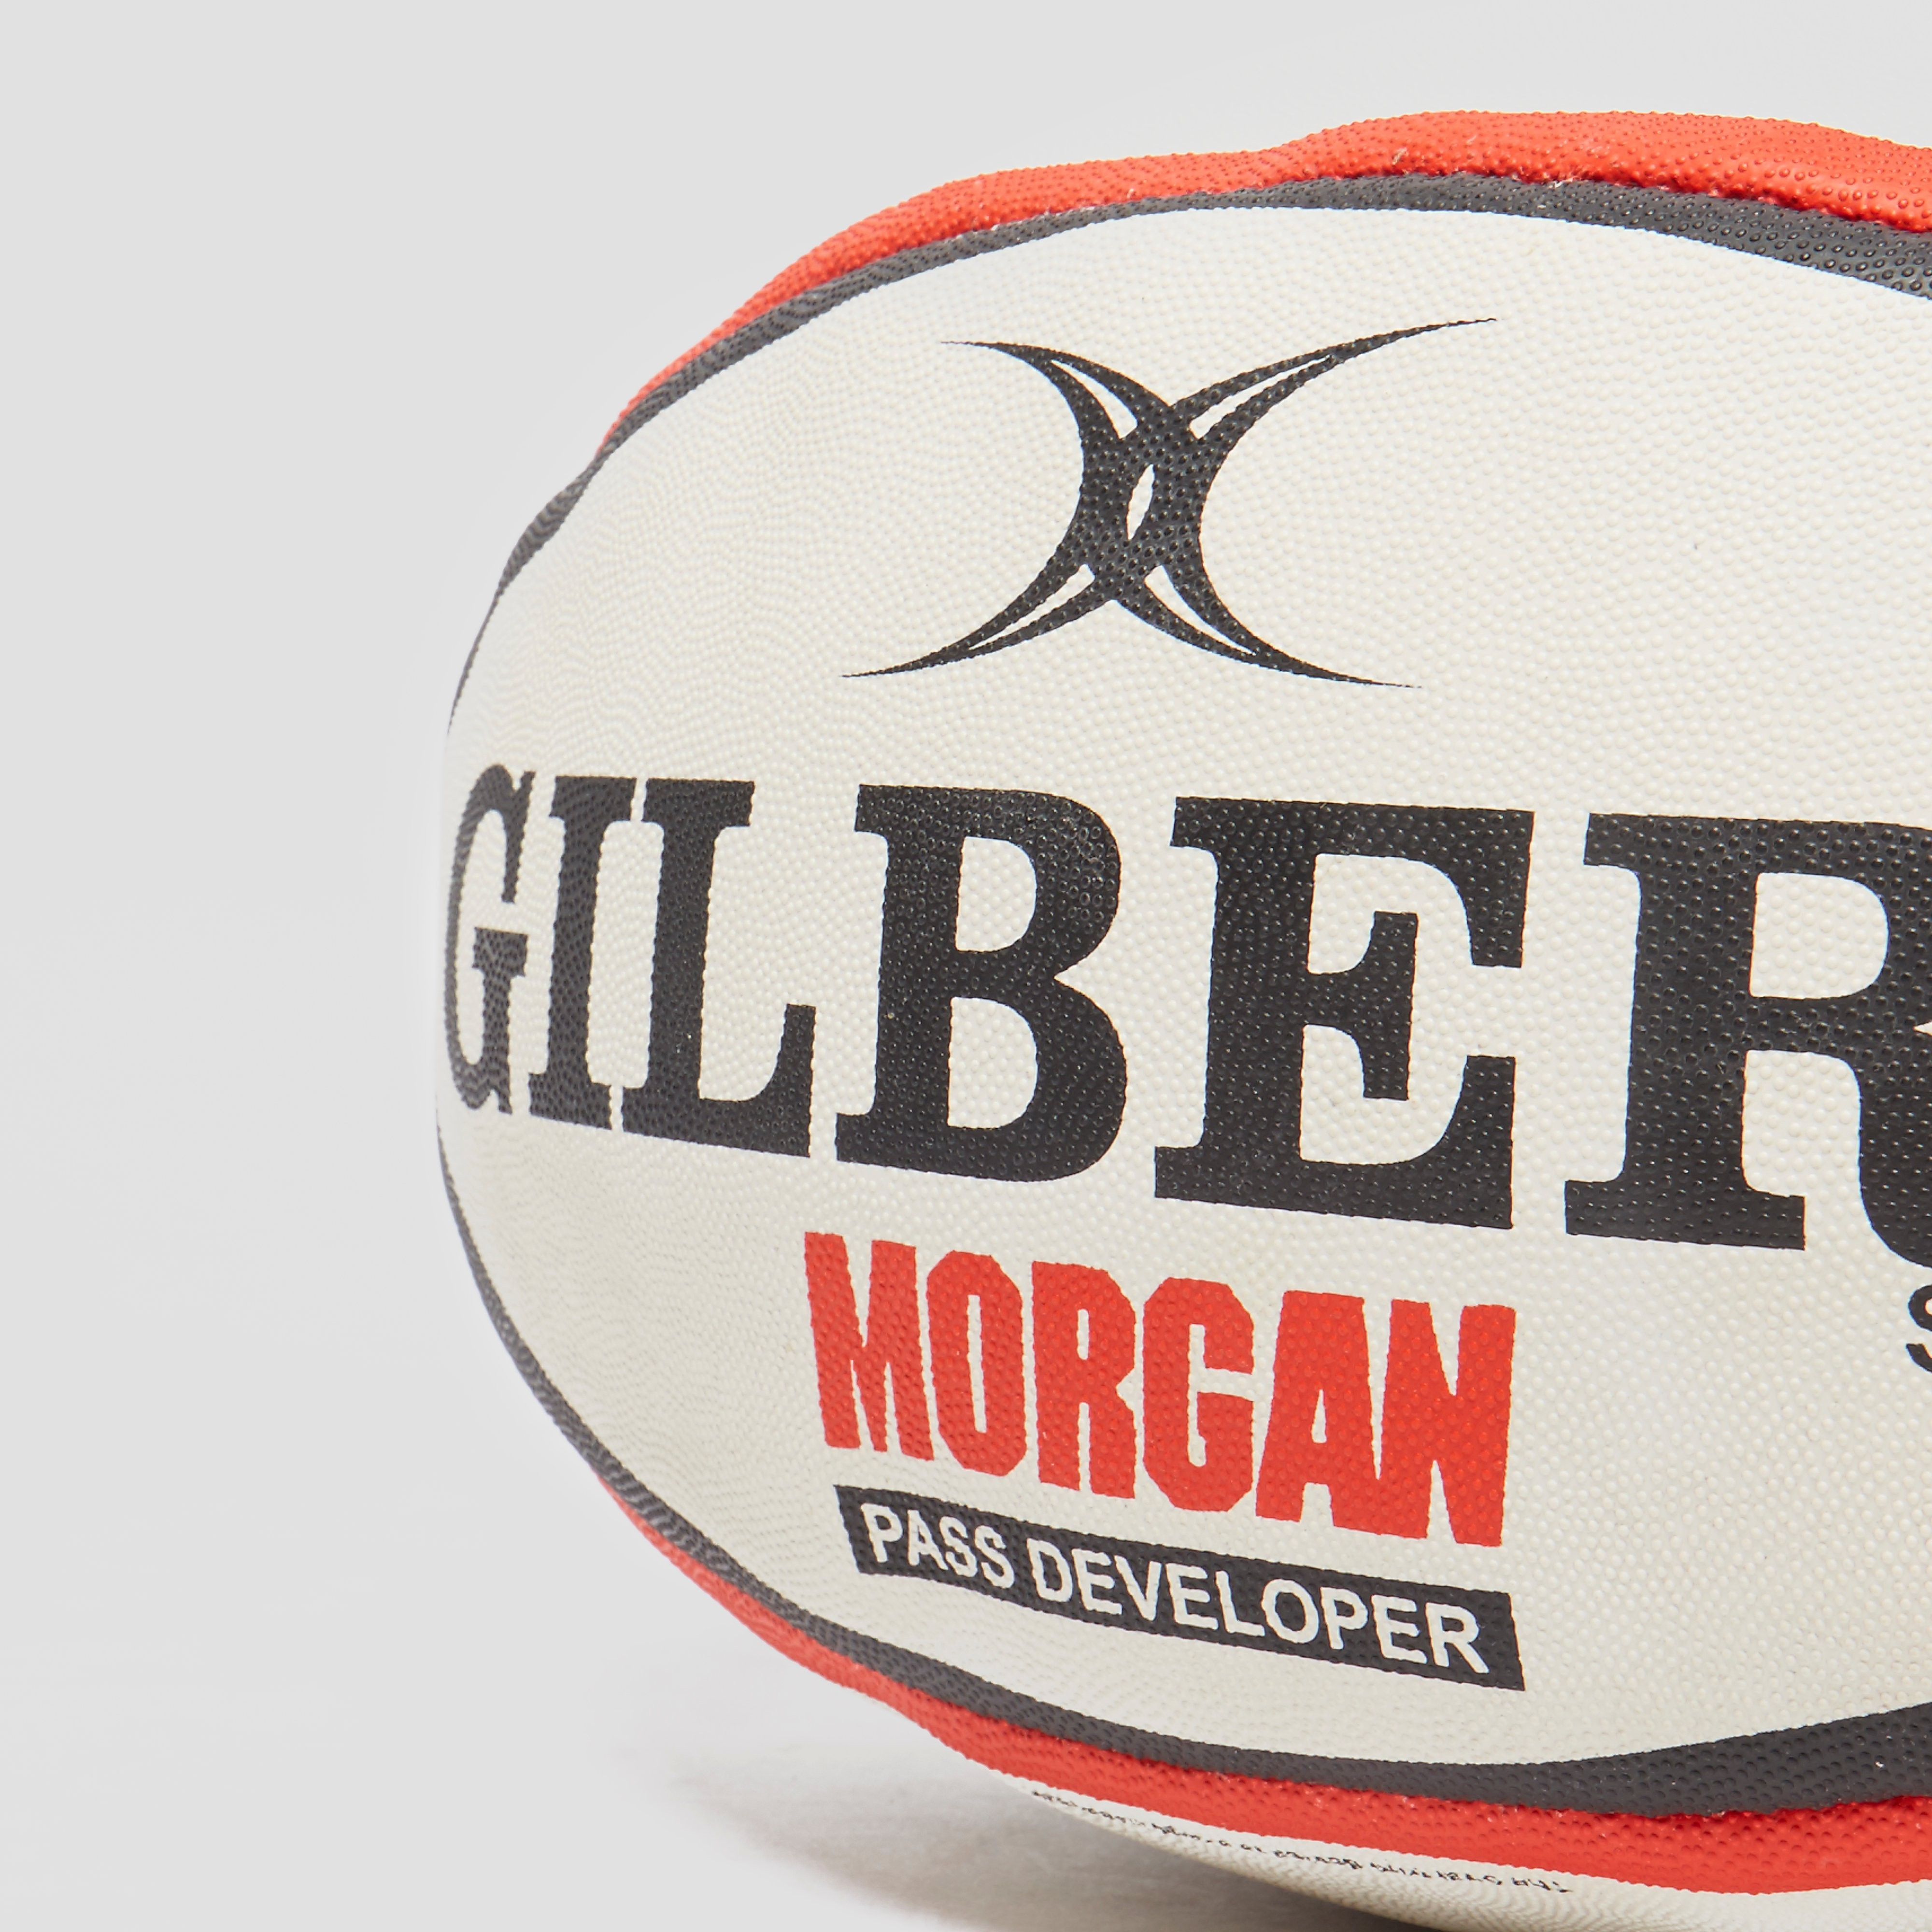 Gilbert Morgan Pass Developer Rugby Training Ball